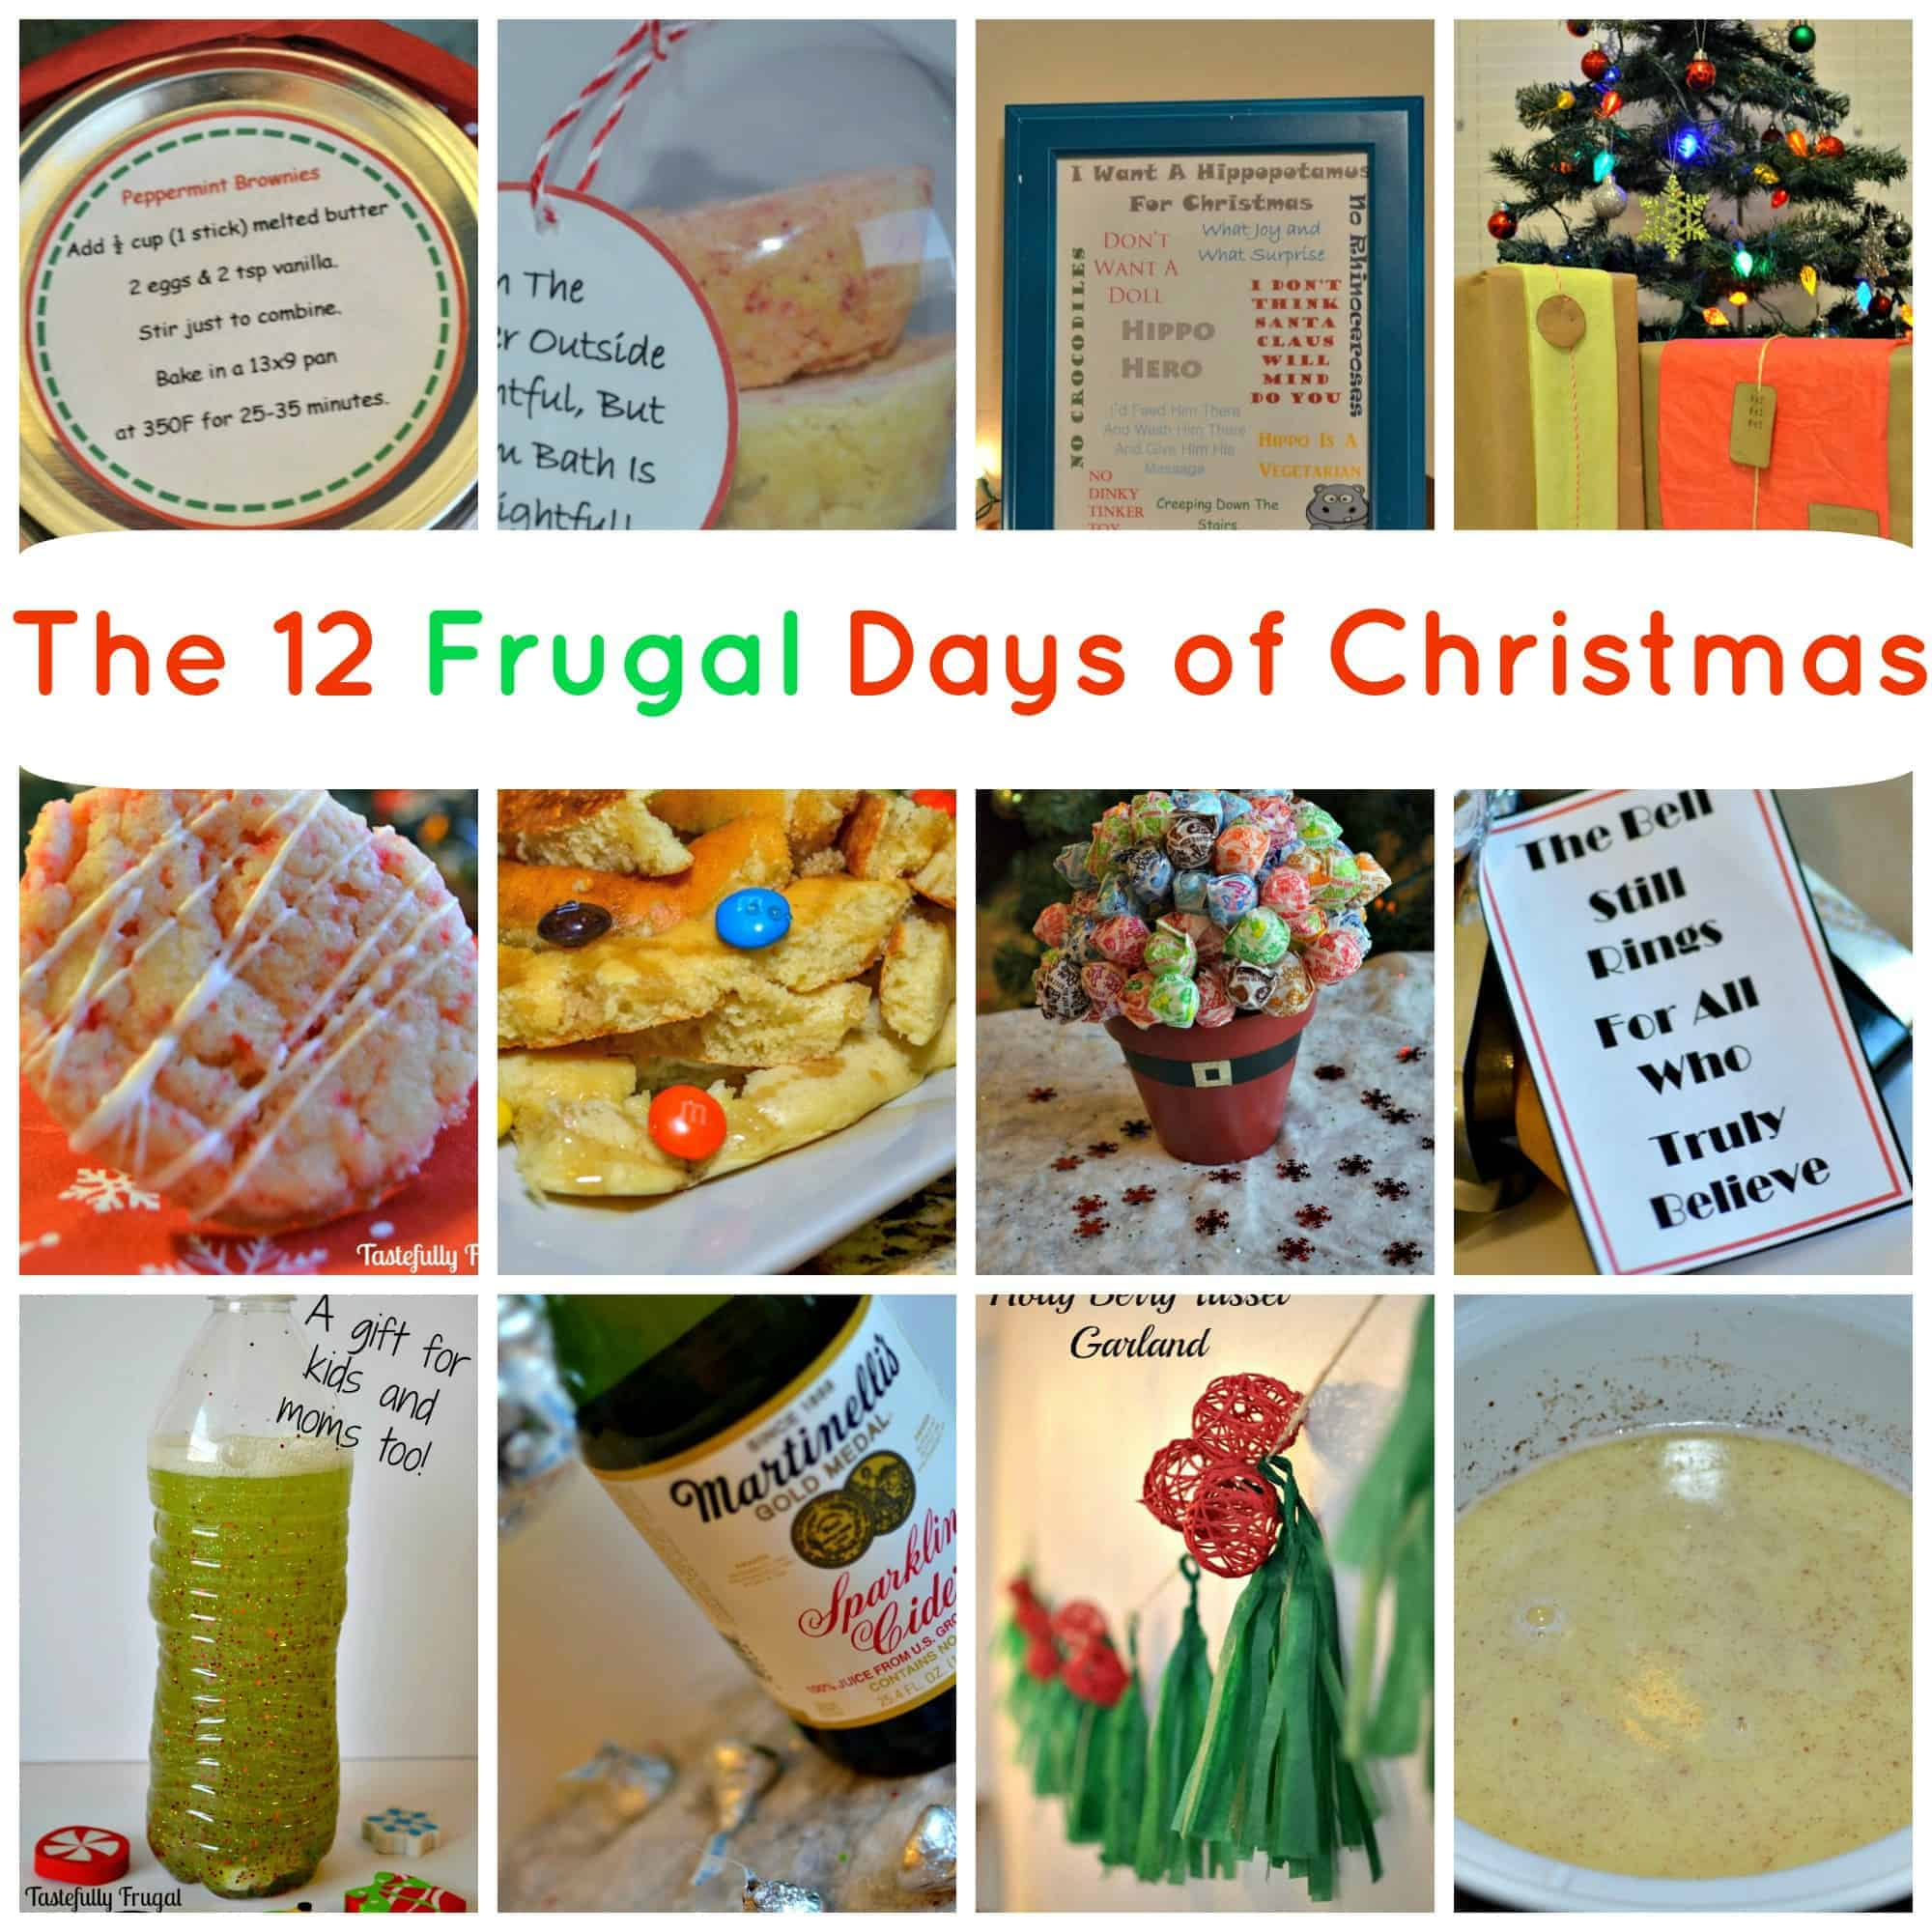 The 12 Frugal Days of Christmas - Tastefully Frugal